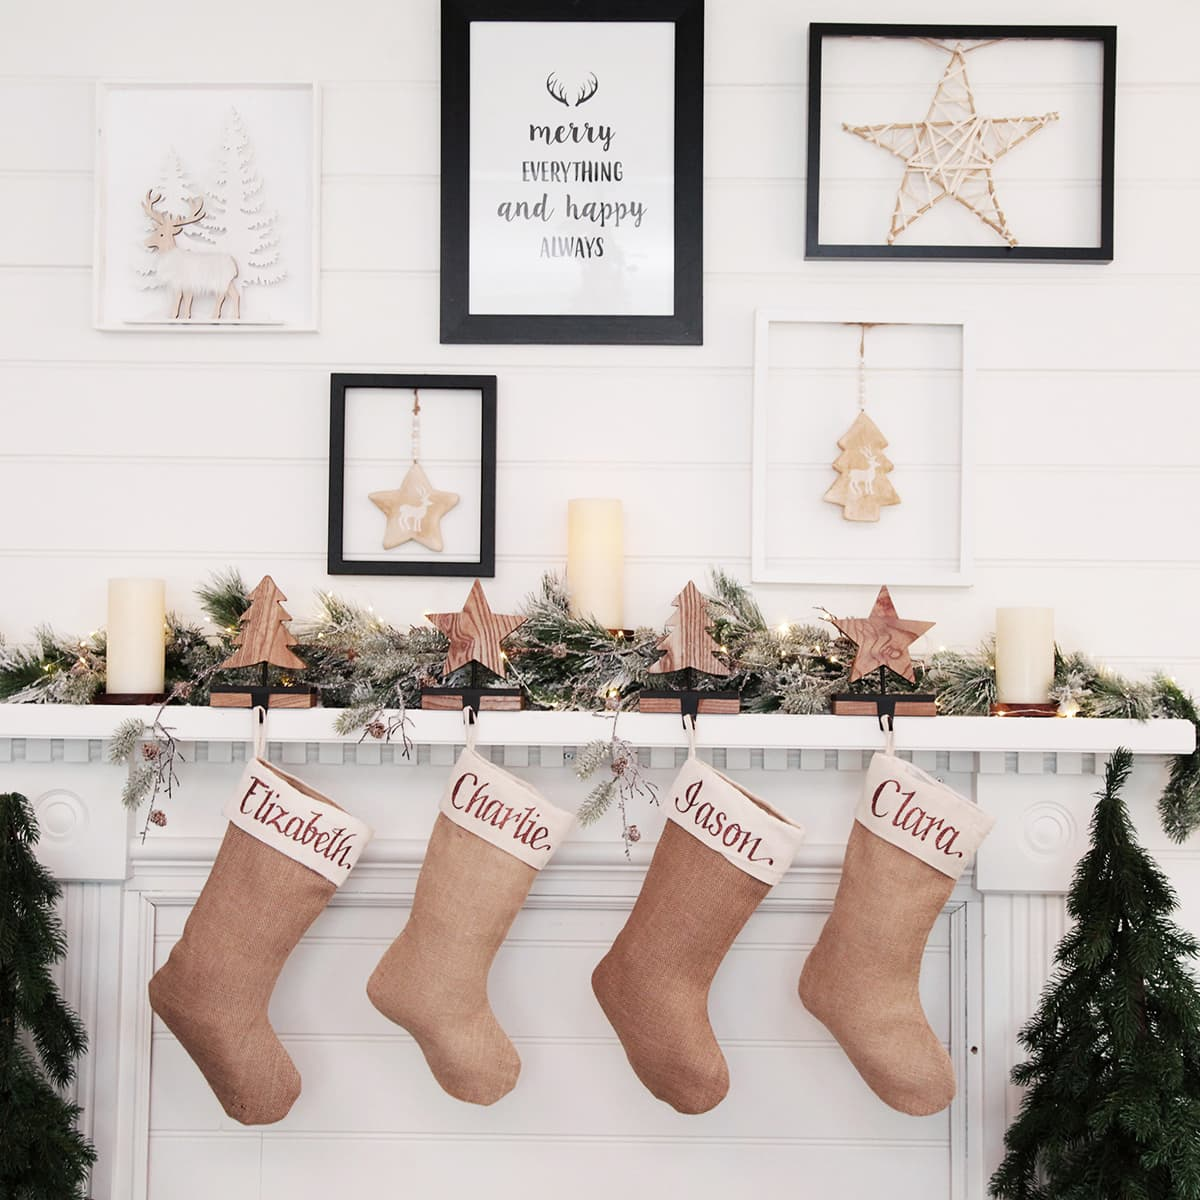 hessian personalised christmas stockings hanging on mantle by christmas cave